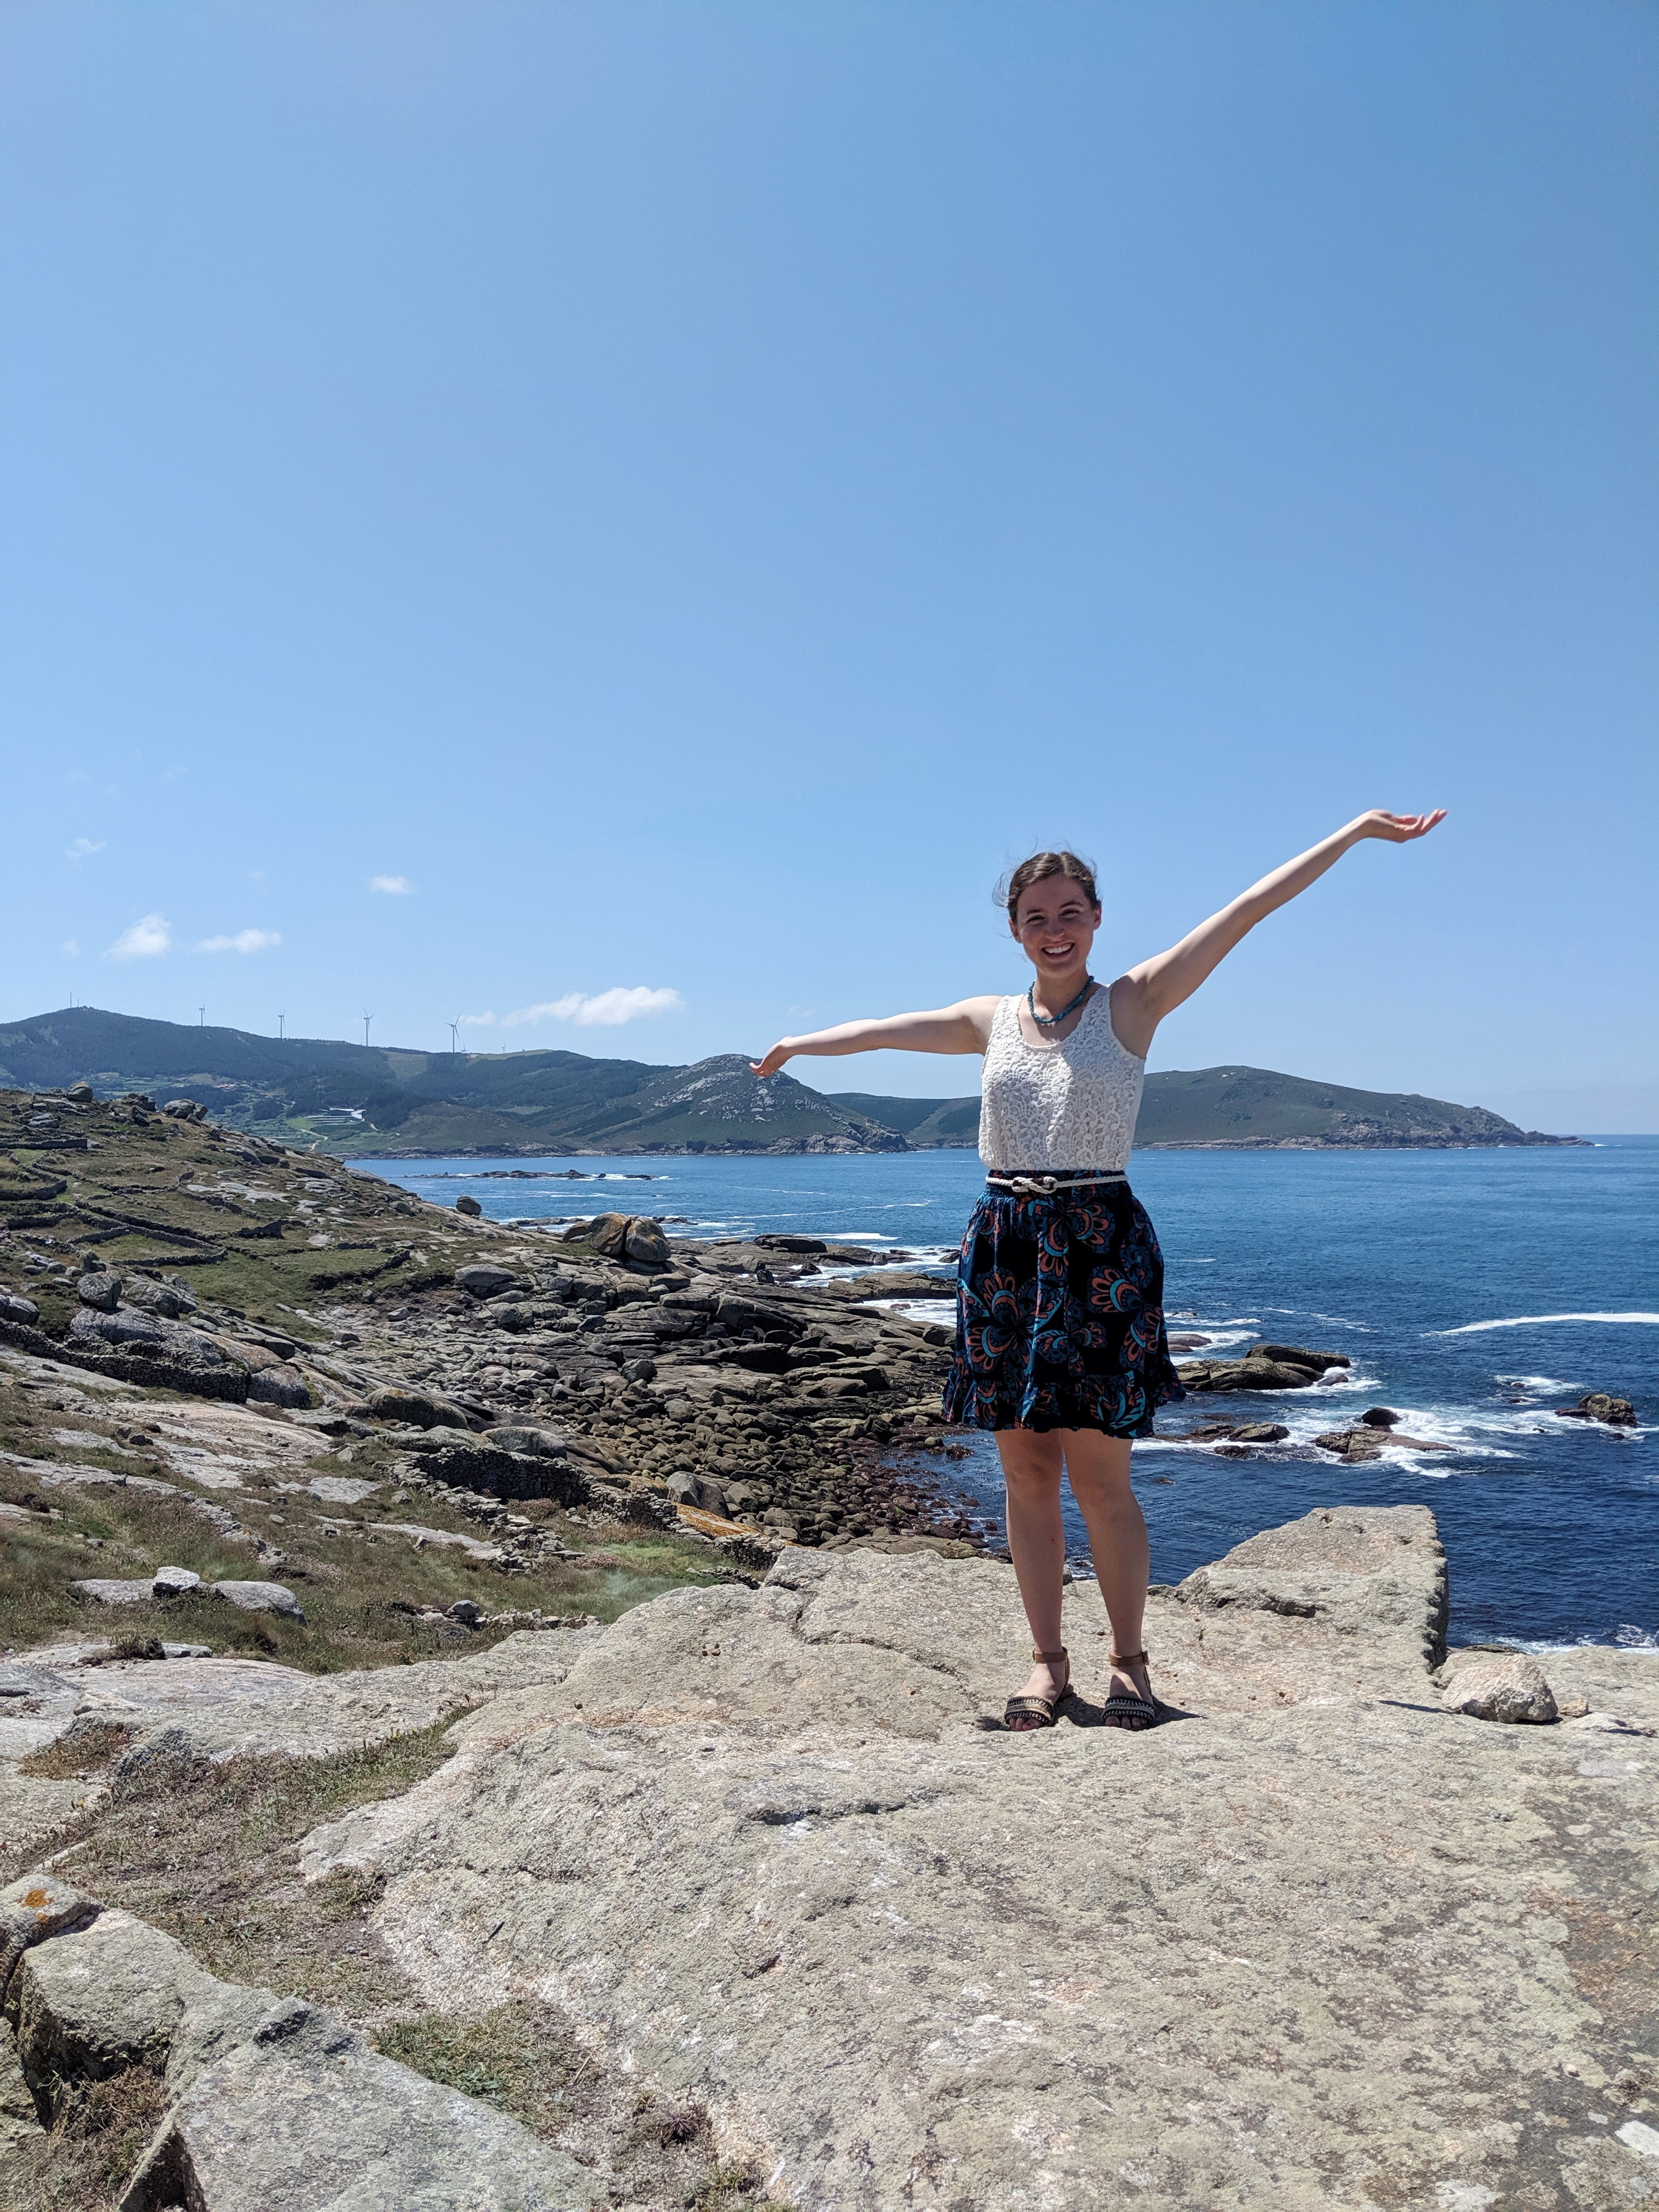 Muxia, Spain, Atlantic Ocean, summer outfit, JCPenney, DSW